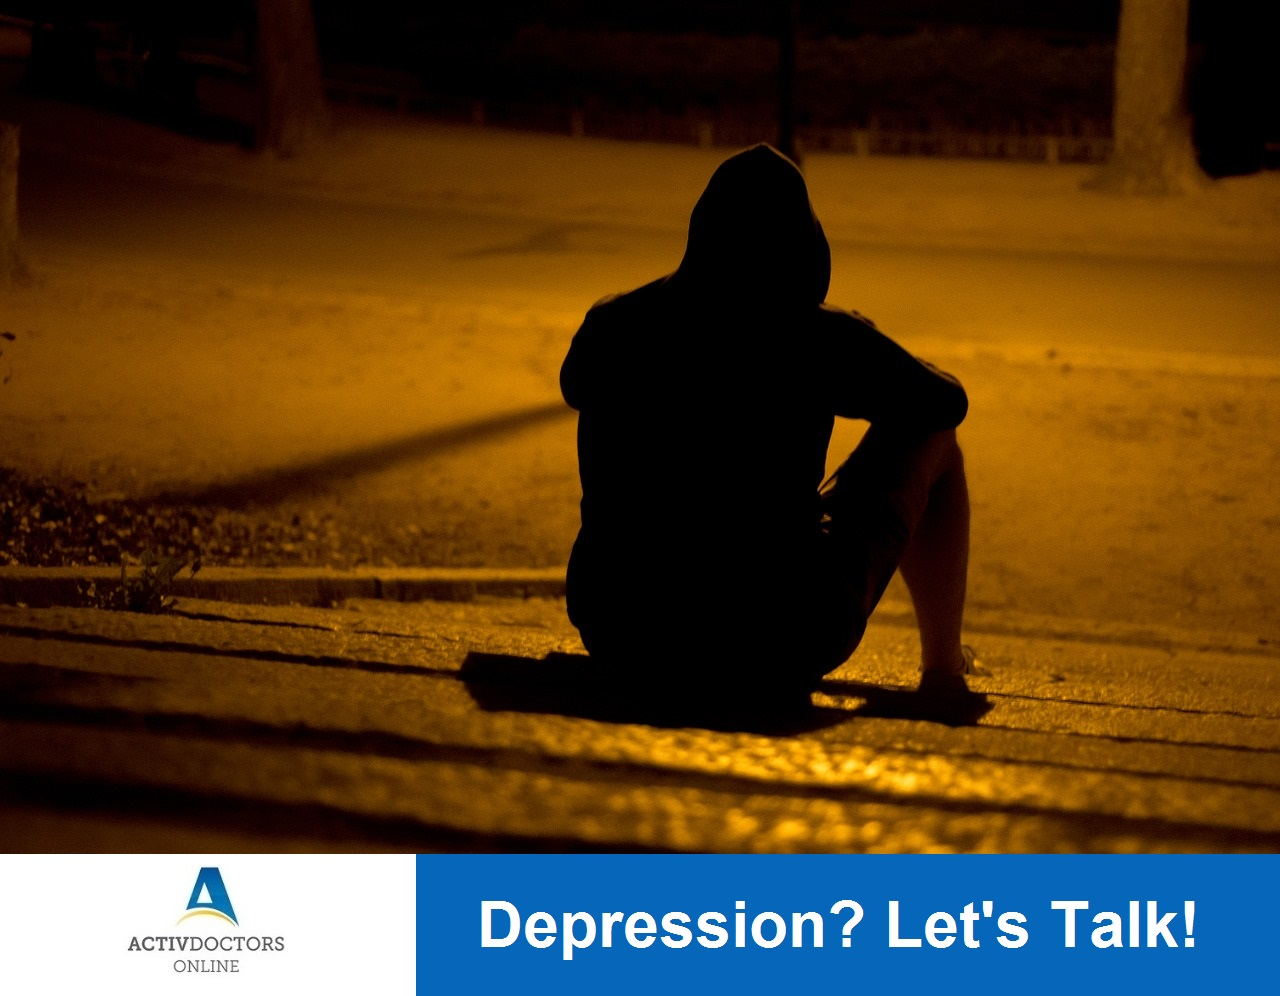 Depression? Let's Talk!